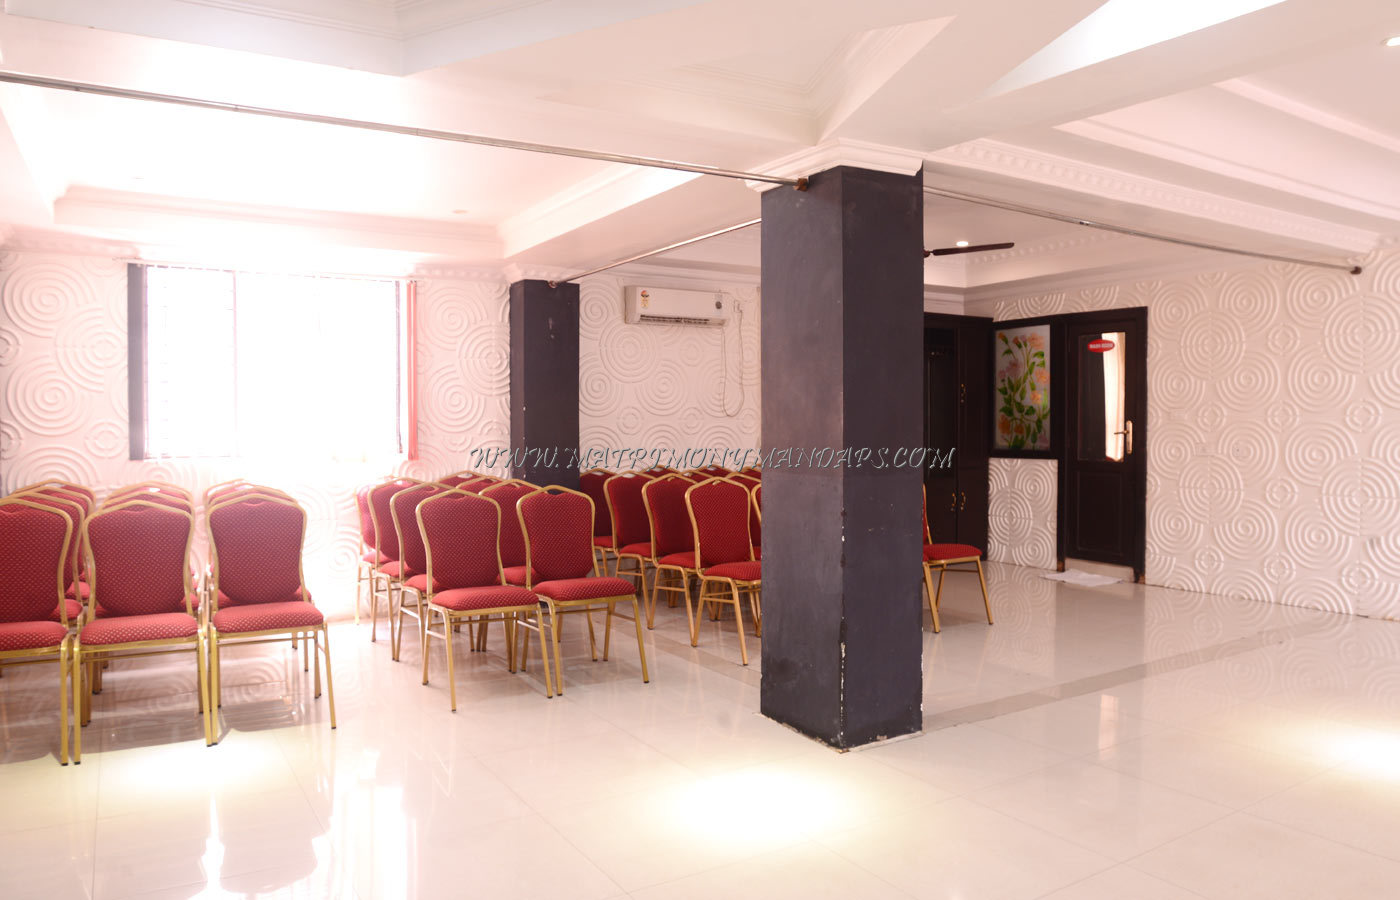 Find the availability of the Hotel Gago Inn (A/C) in Pattom, Trivandrum and avail special offers